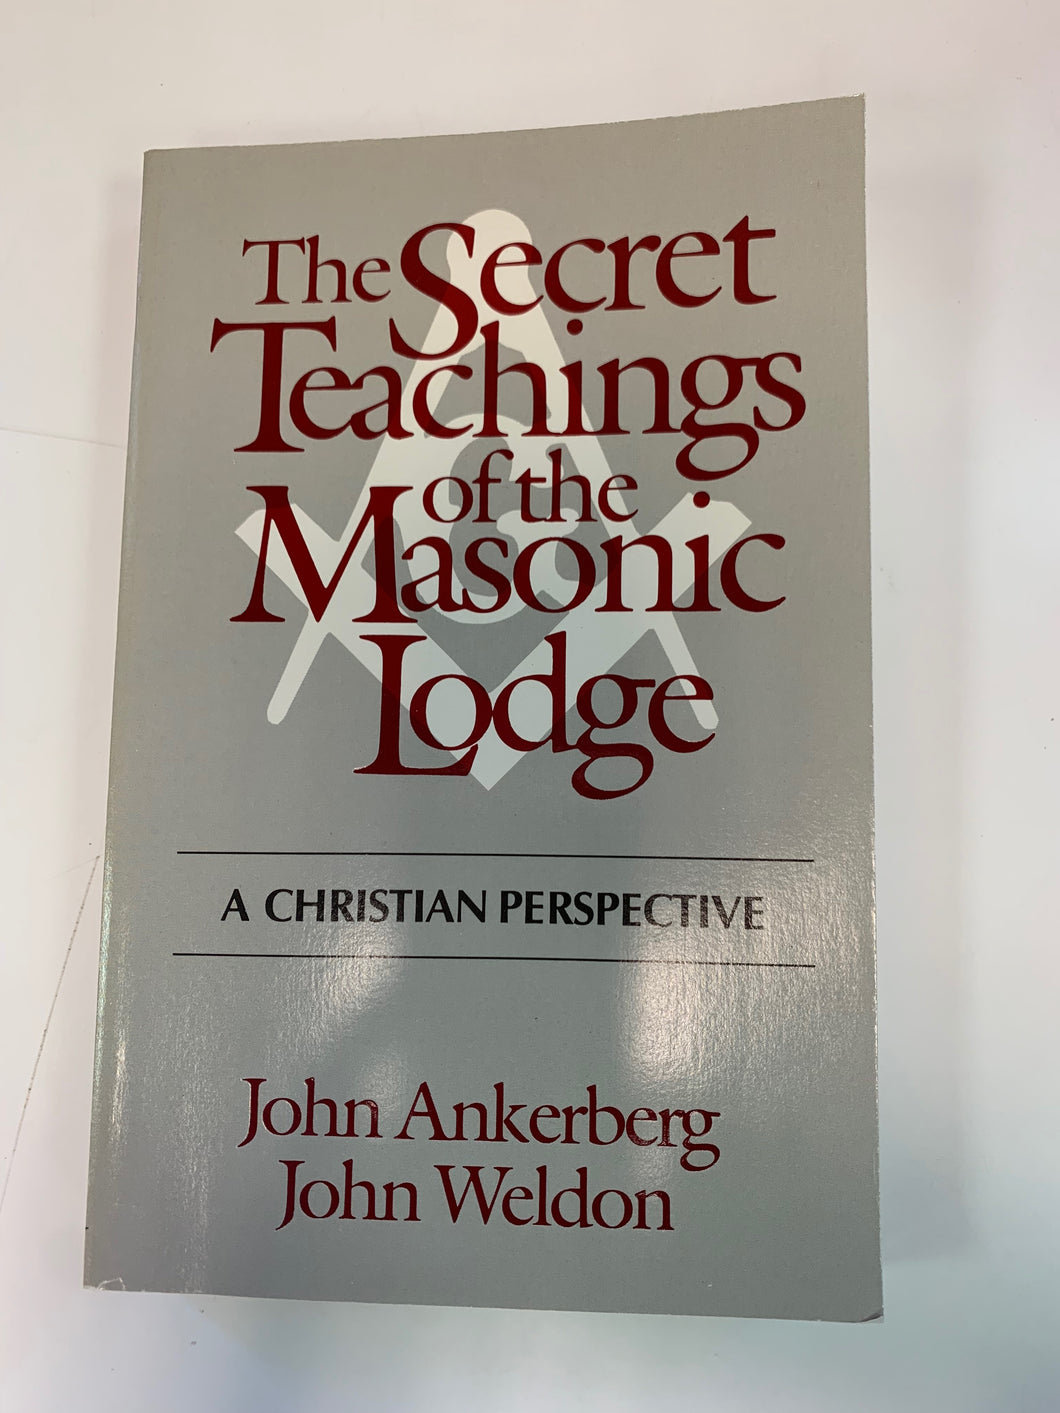 The Secret Teachings of the Masonic Lodge by John Ankerberg & John Weldon